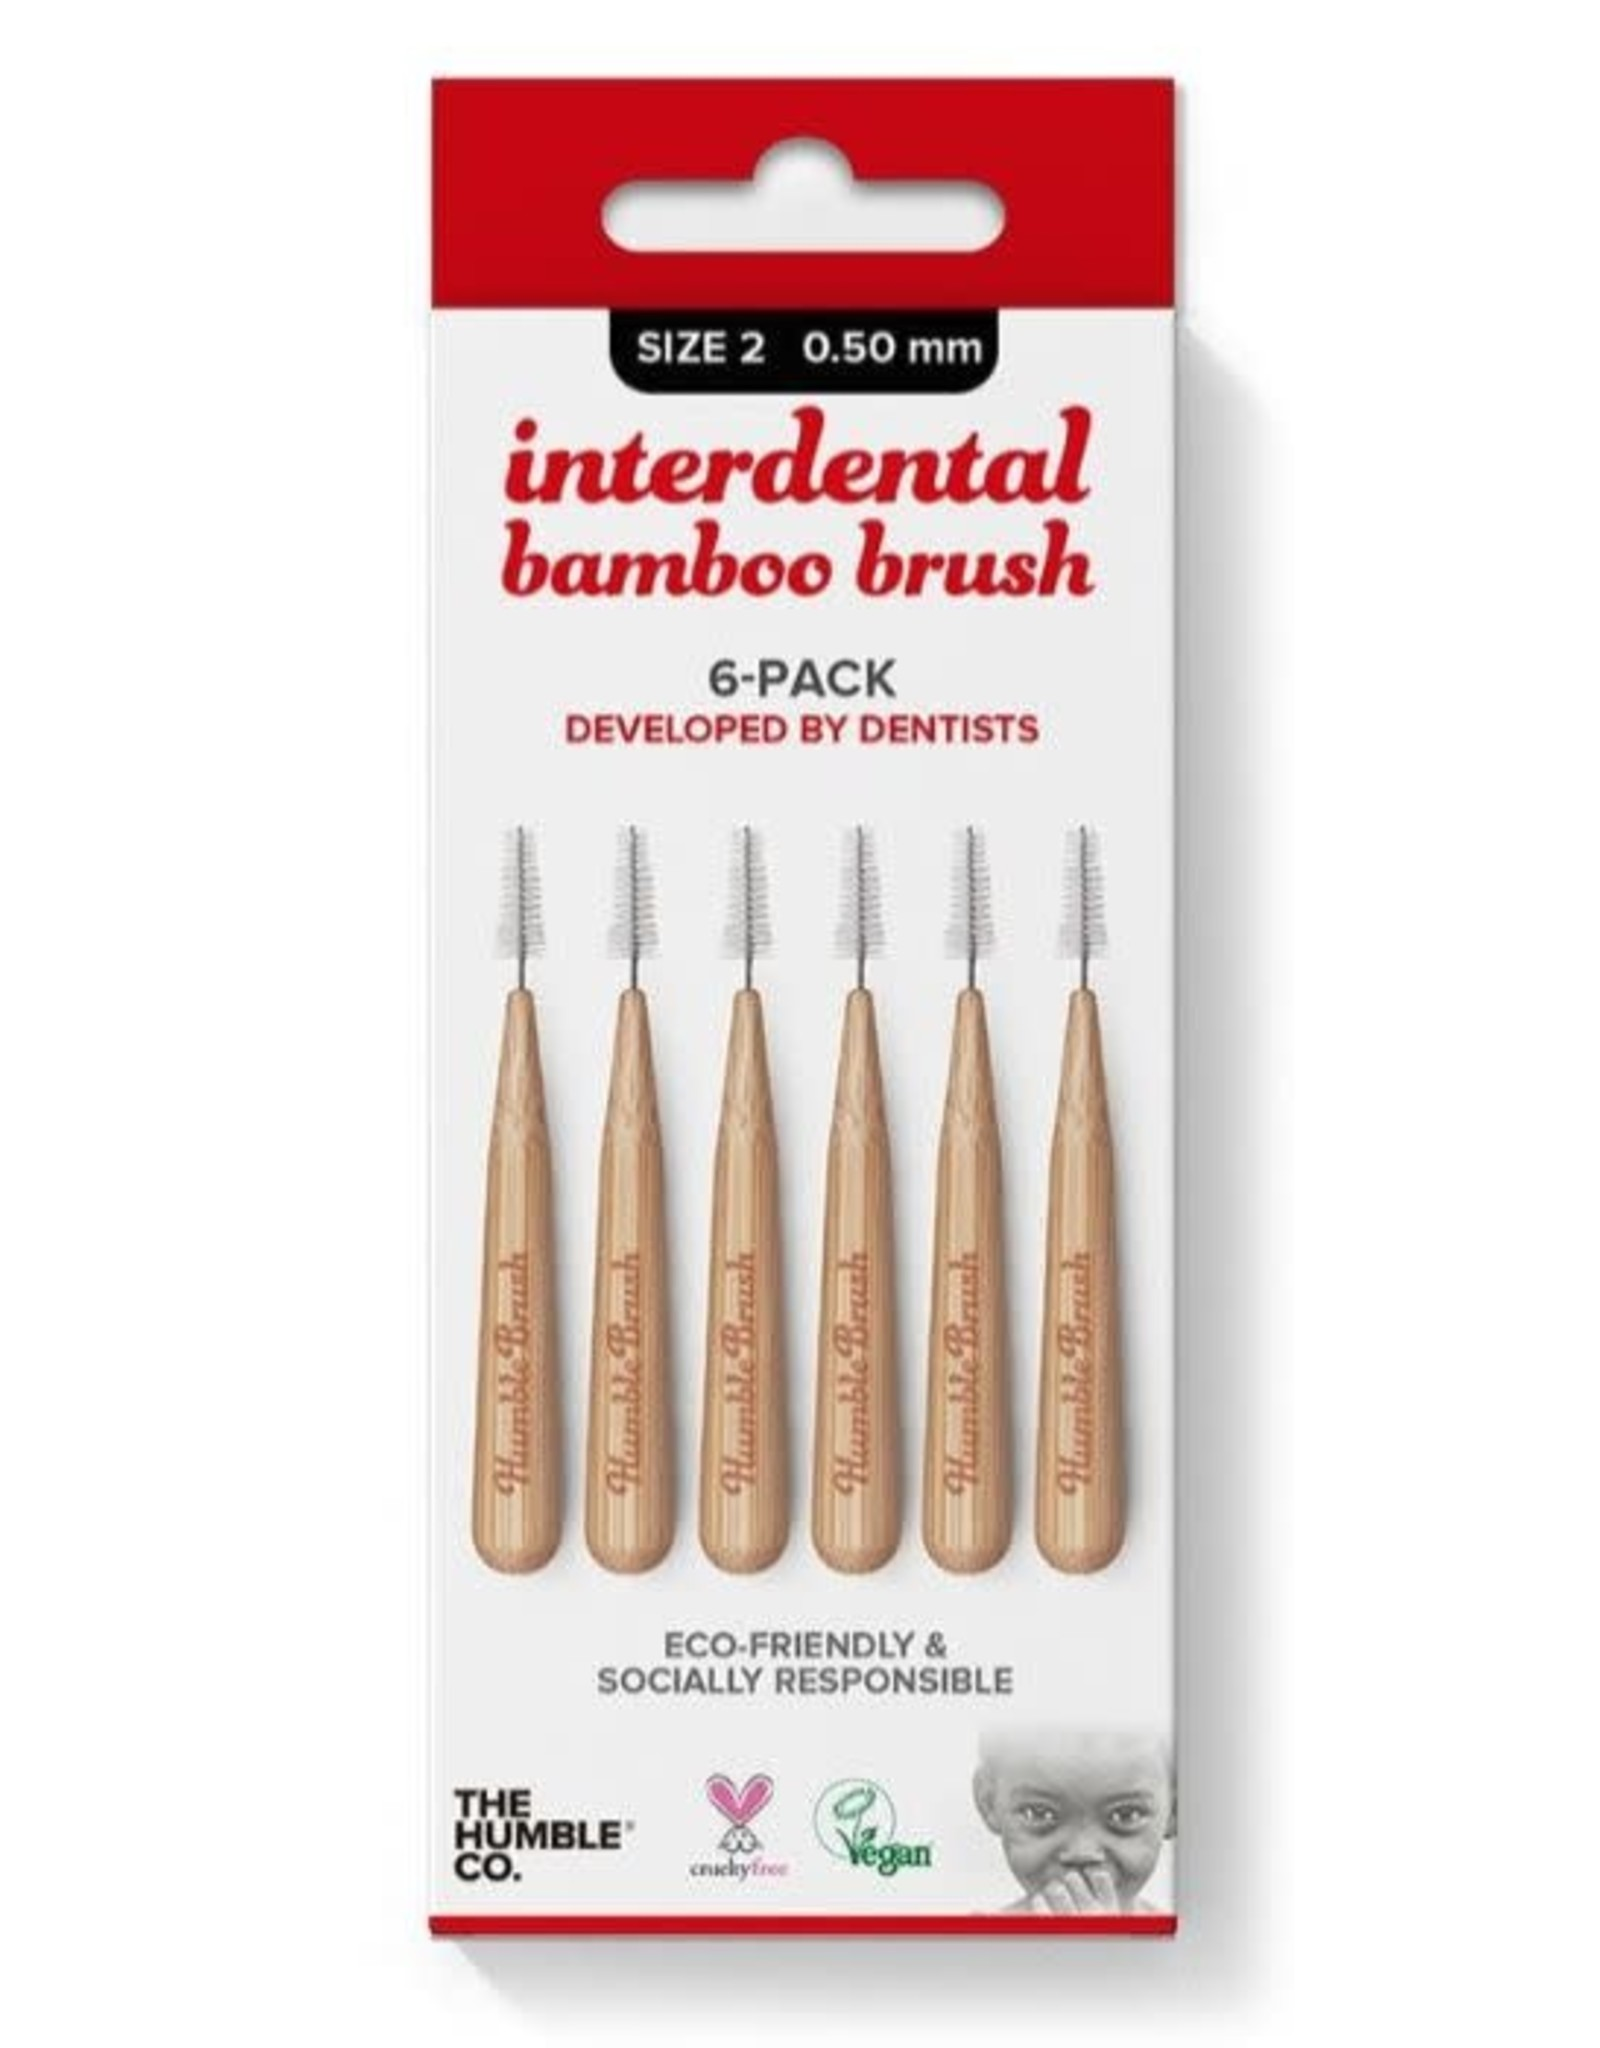 The Humble Co. Humble Bamboo Interdental bamboo brush size 2 - 0,50 mm